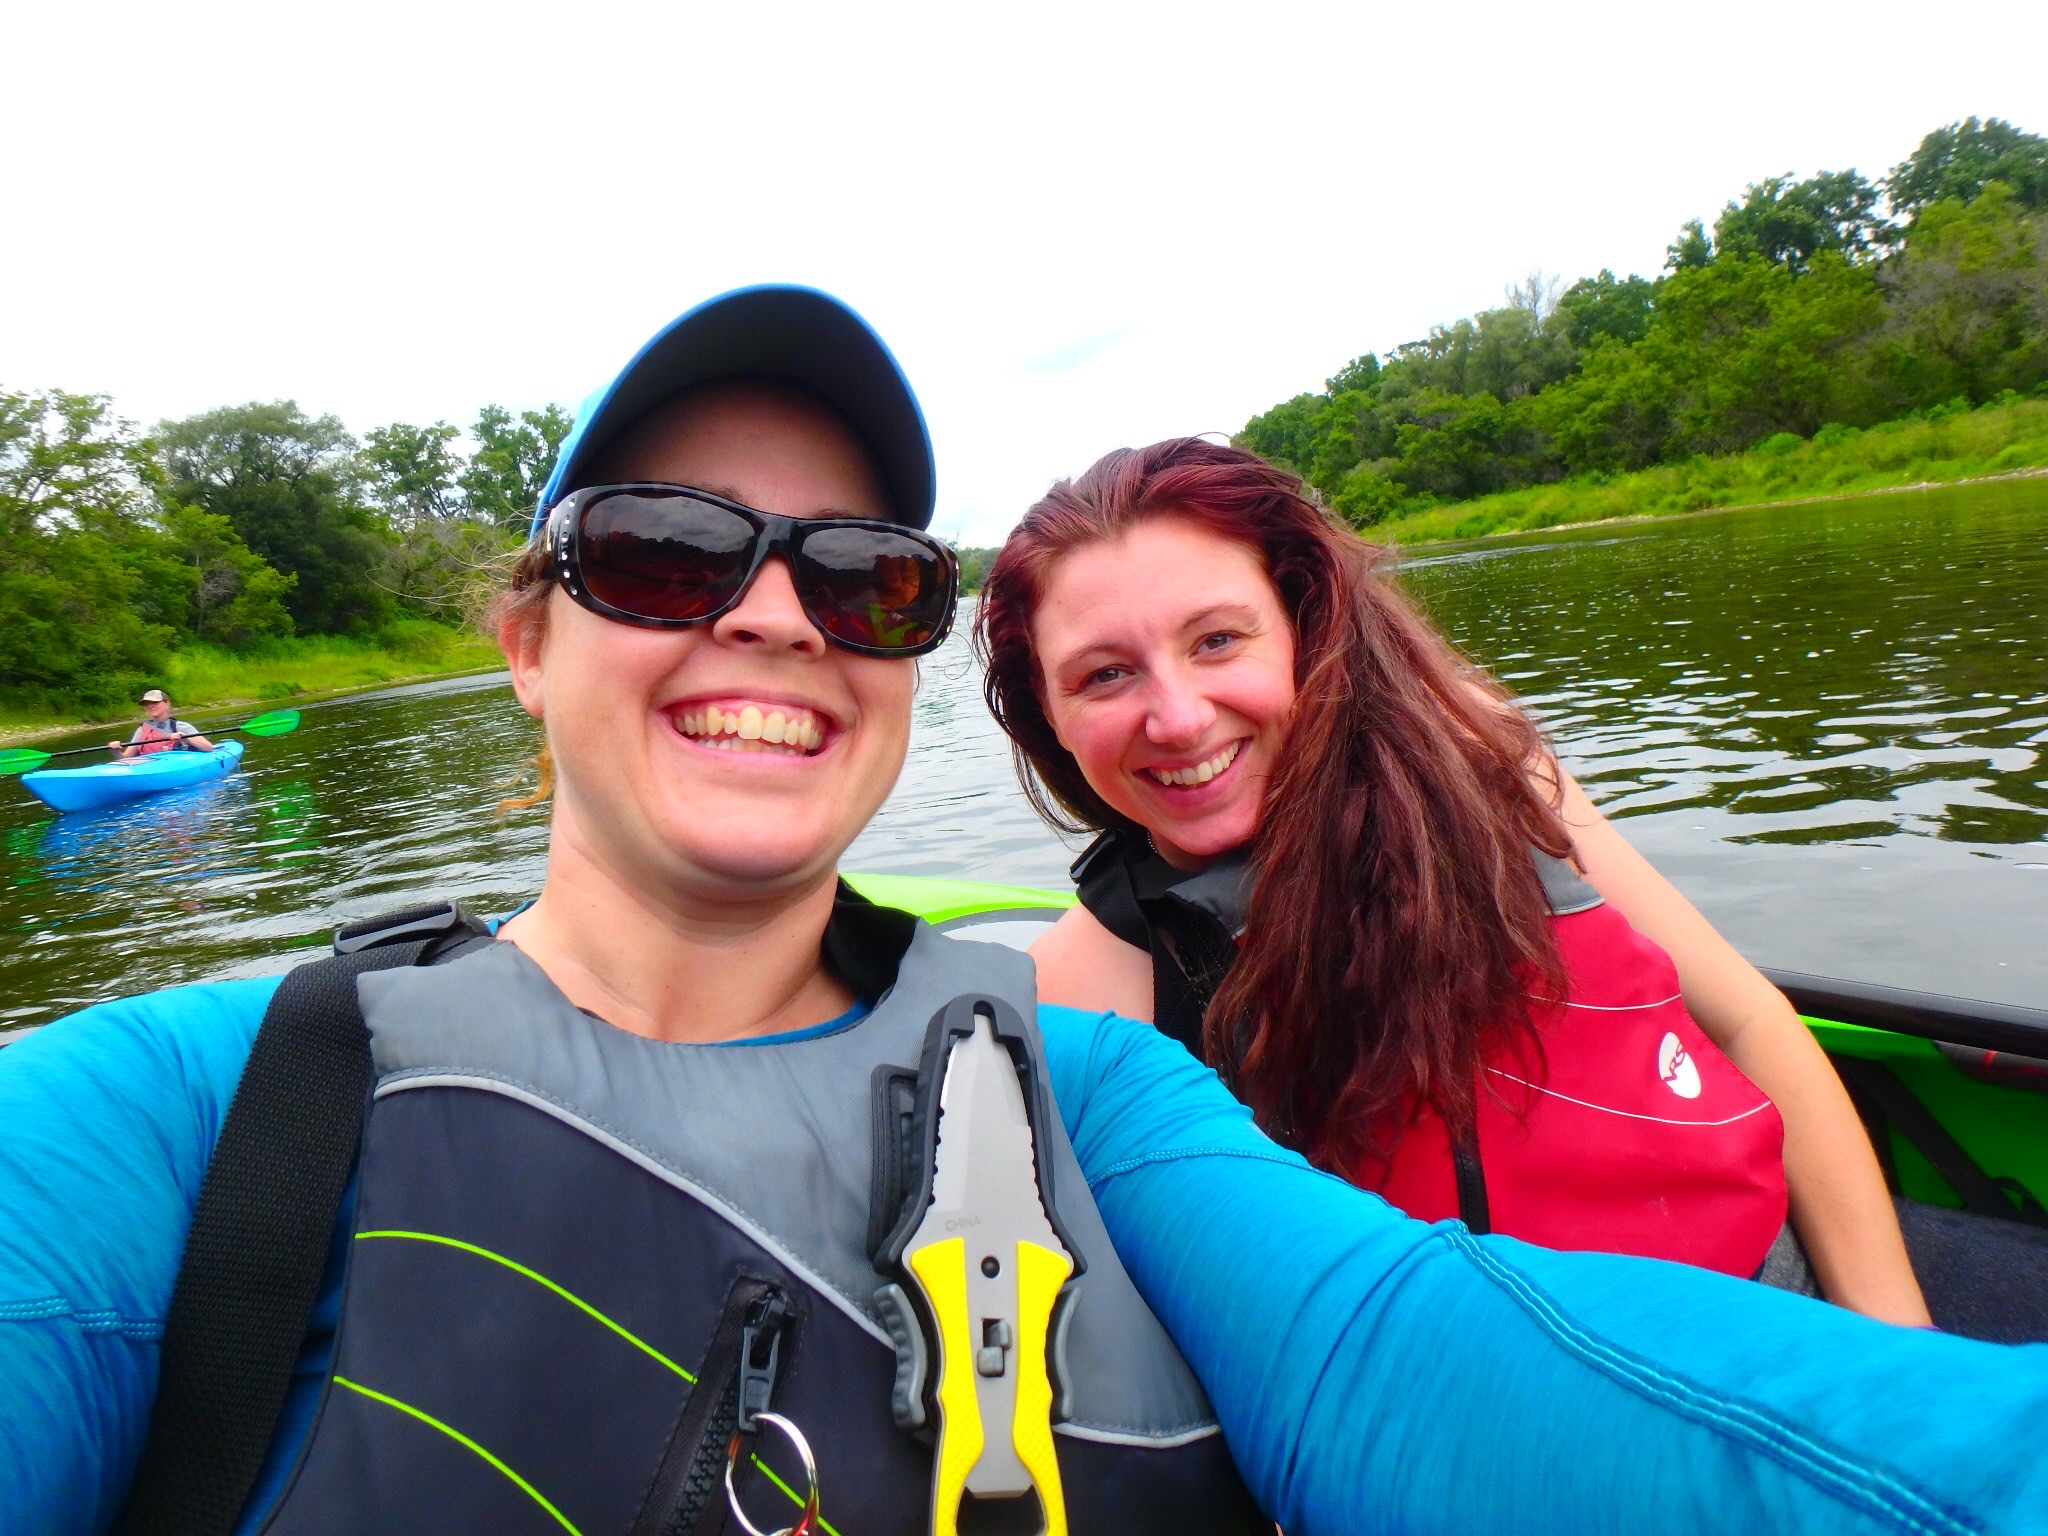 August 1, 2018 - Kayaking, Meditation & Yoga-91